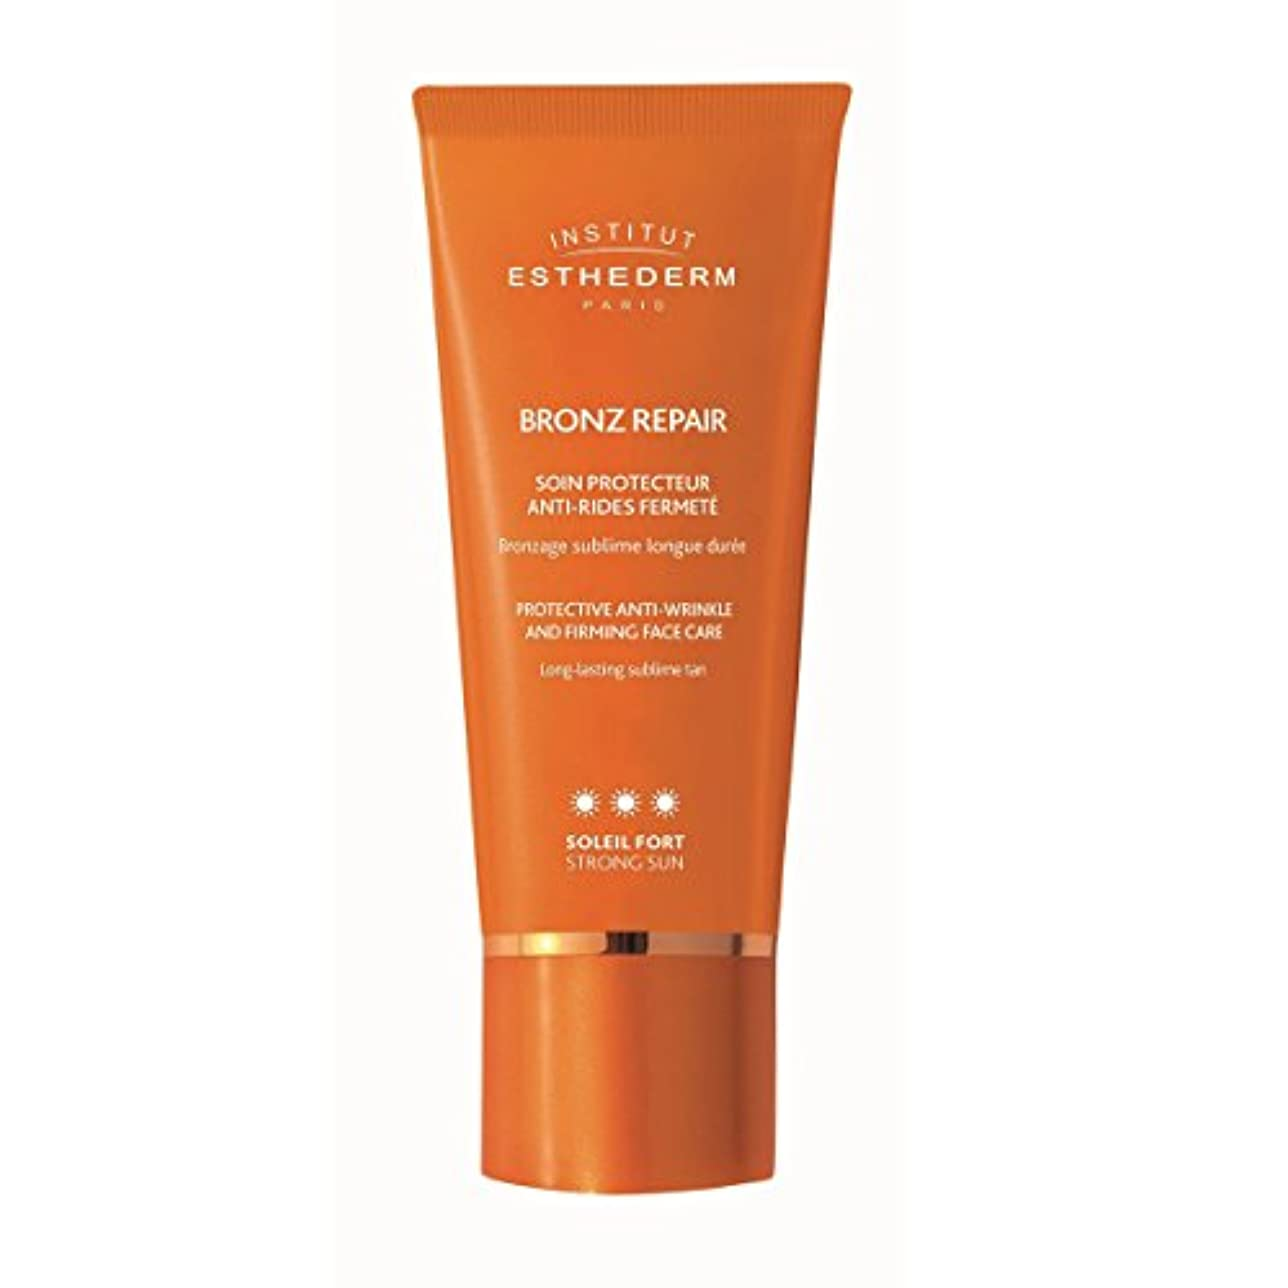 充実松憧れInstitut Esthederm Bronz Repair Protective Anti-wrinkle And Firming Face Care Strong Sun 50ml [並行輸入品]